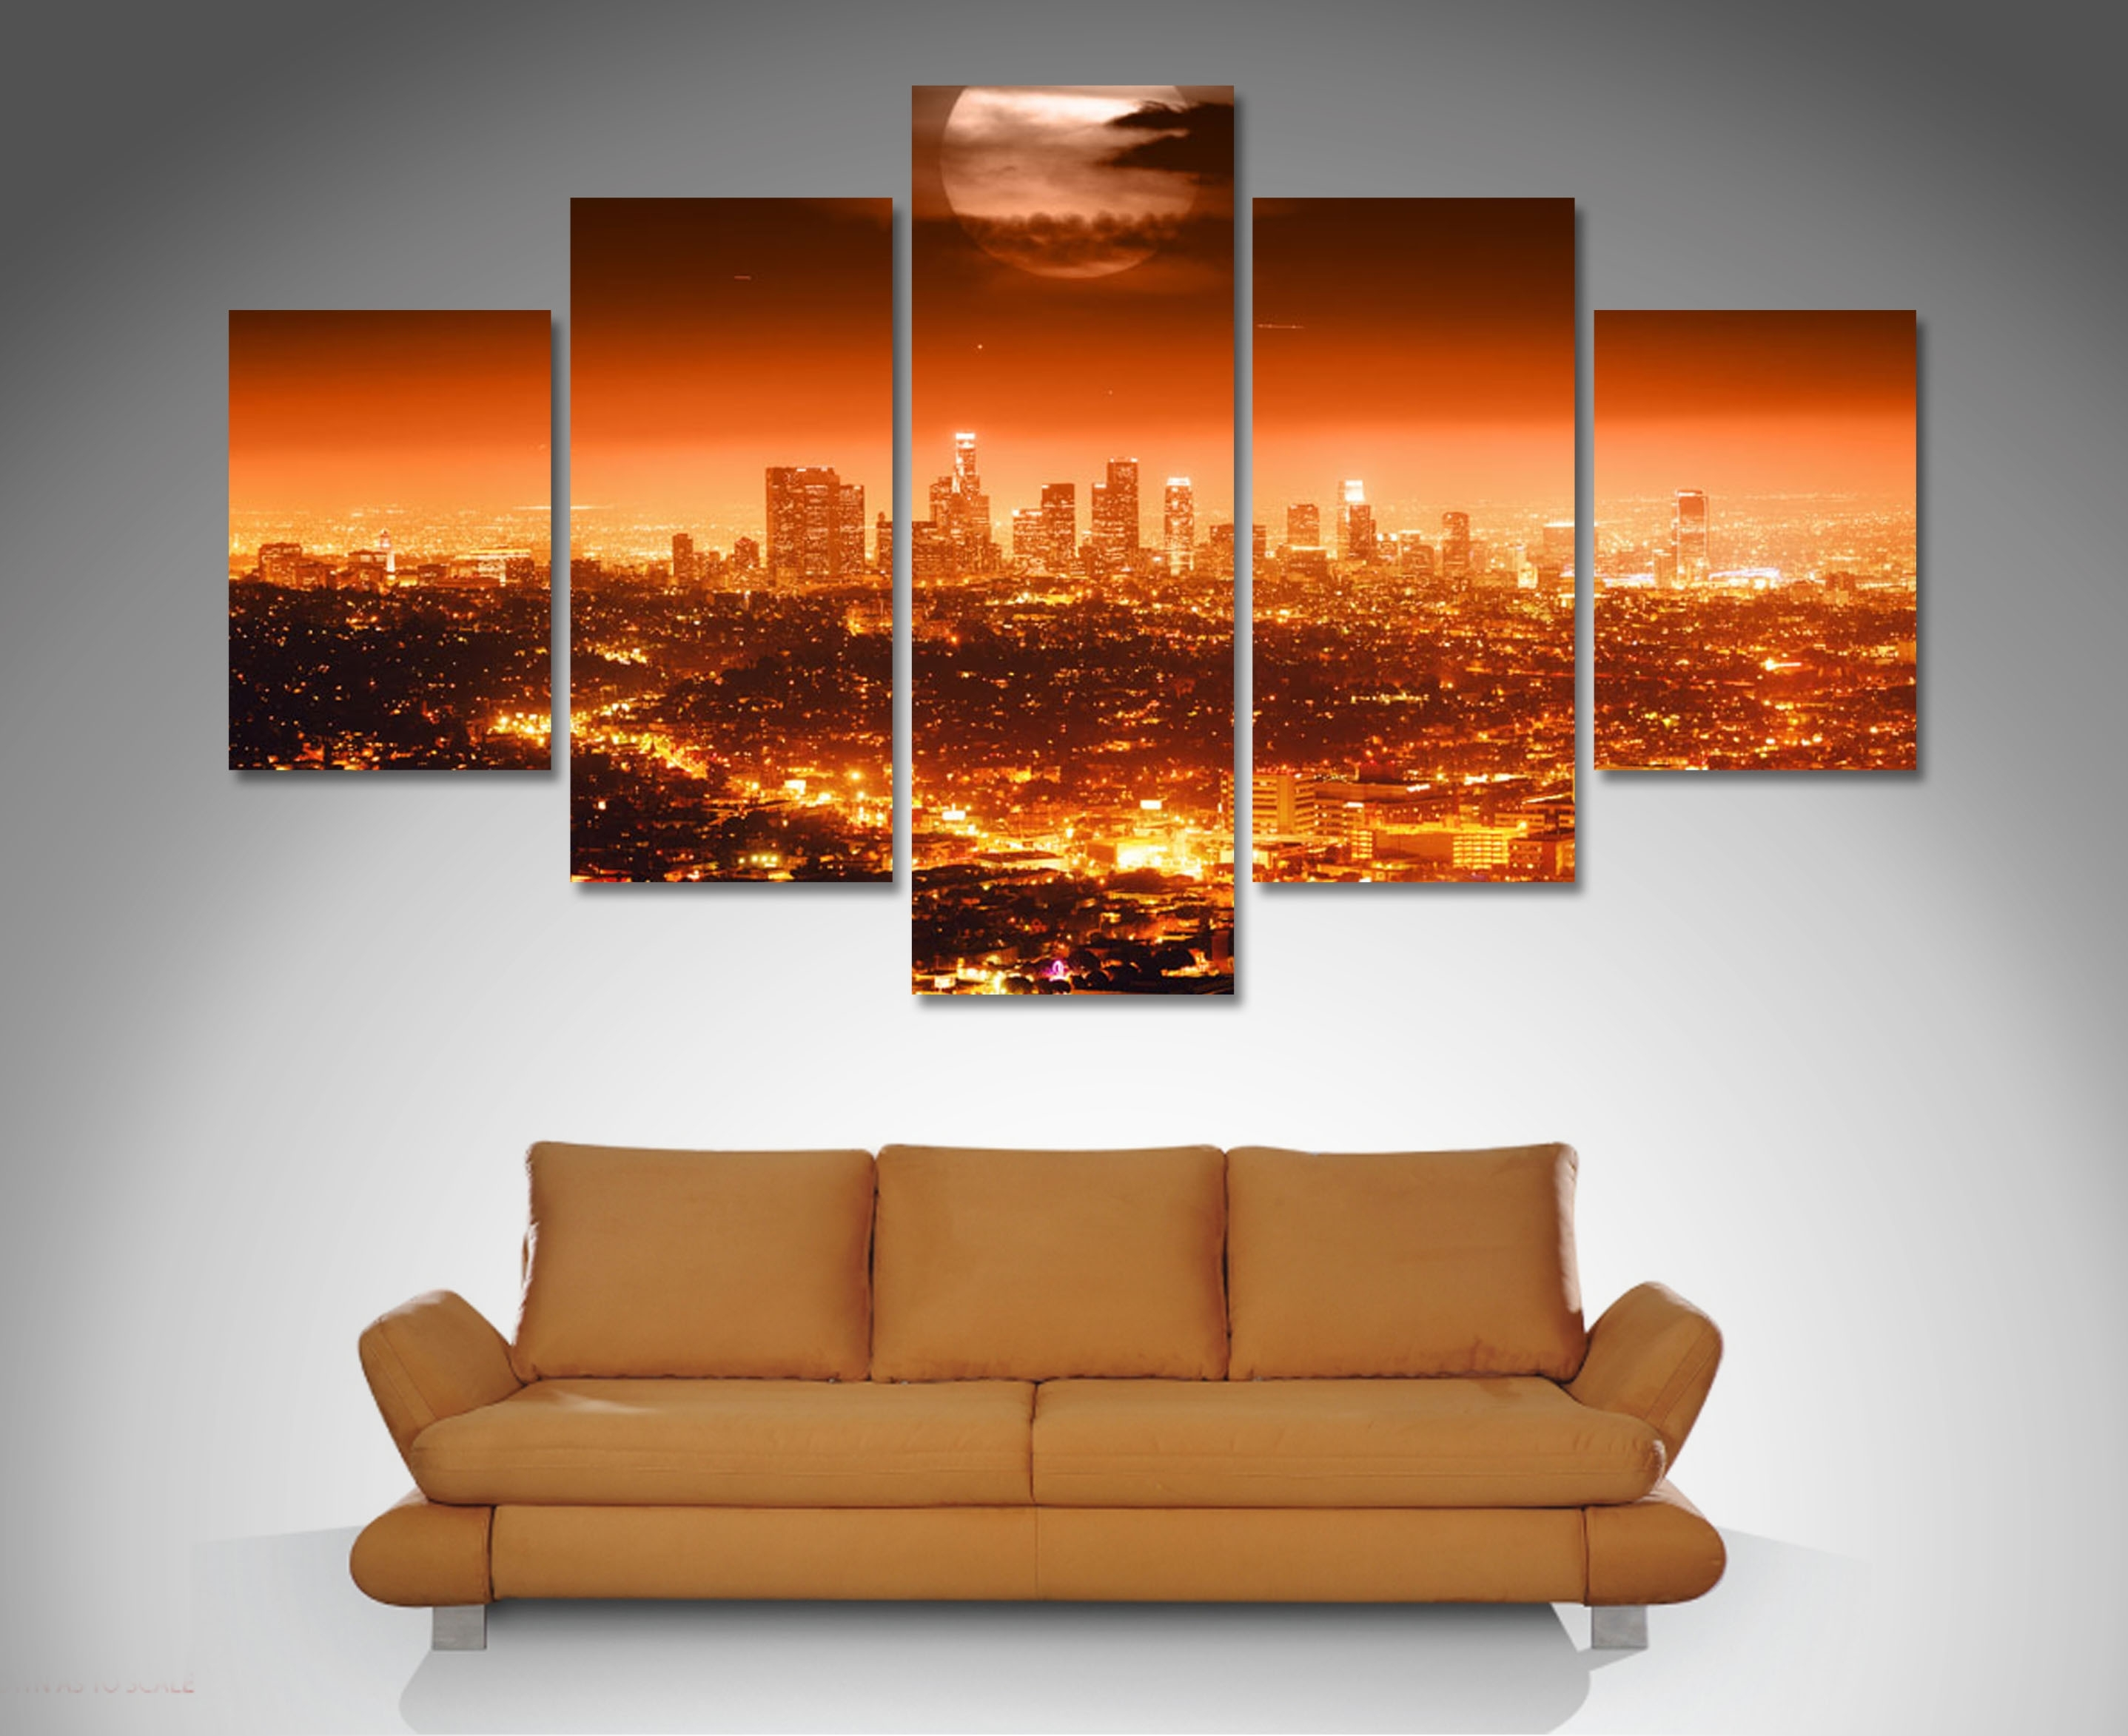 Los Angeles 5 Panel Wall Art Canvas Print Within Most Popular Panel Wall Art (Gallery 10 of 20)